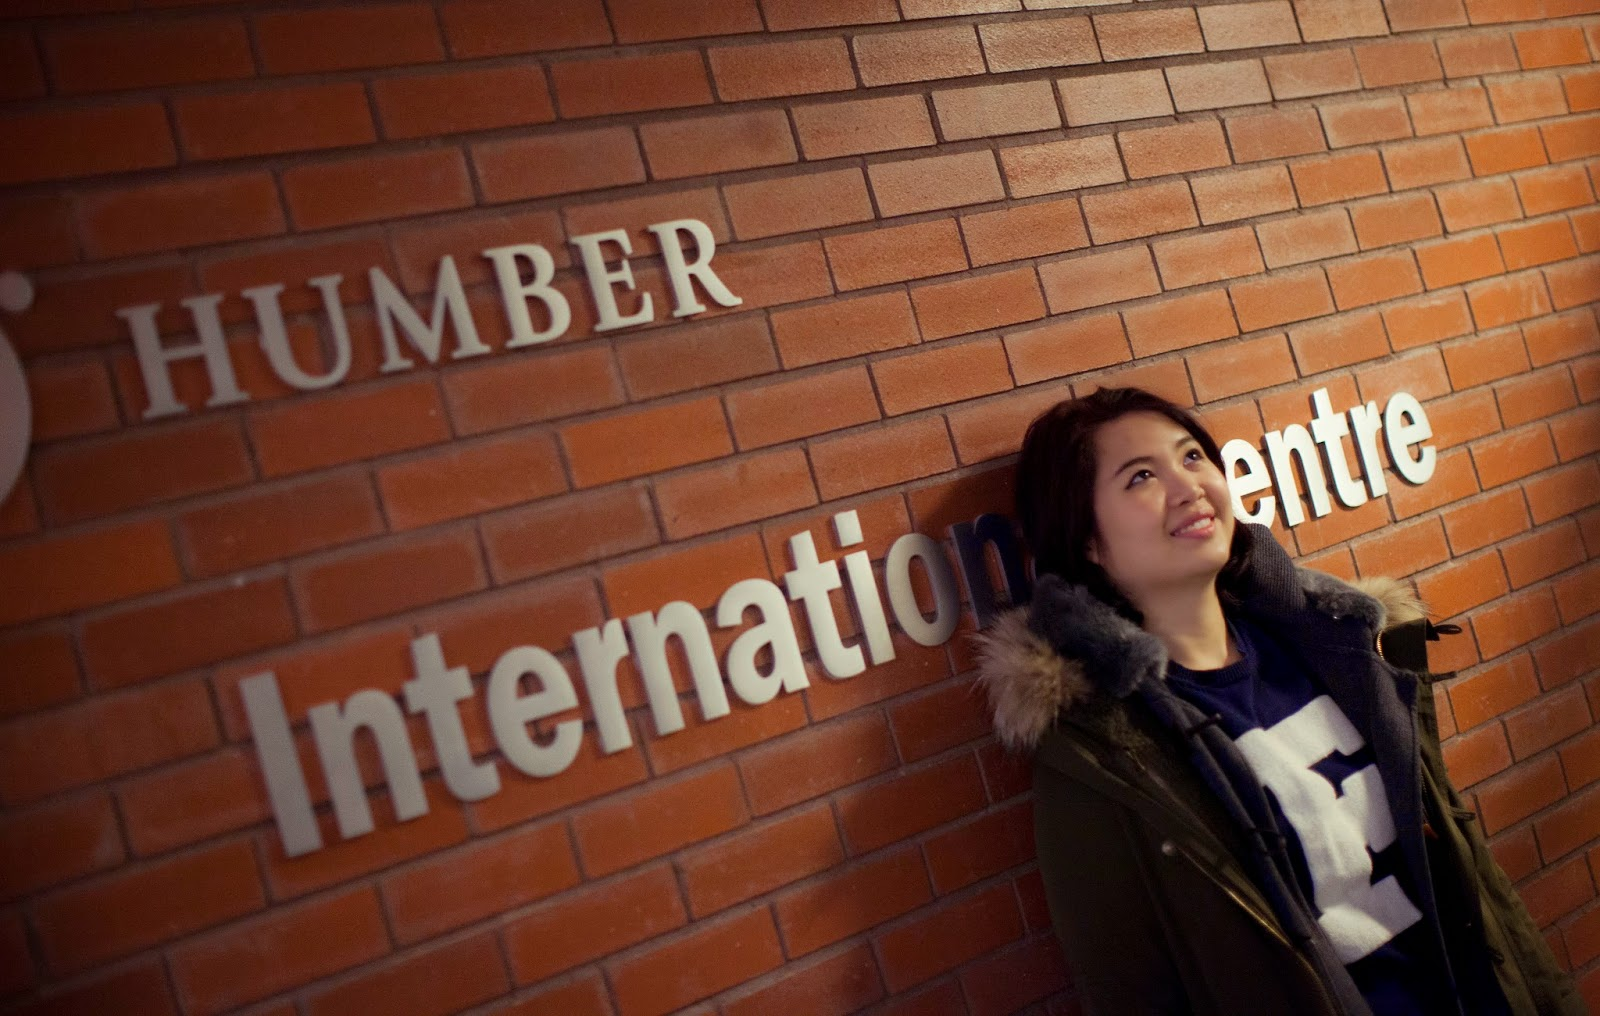 international.humber.ca